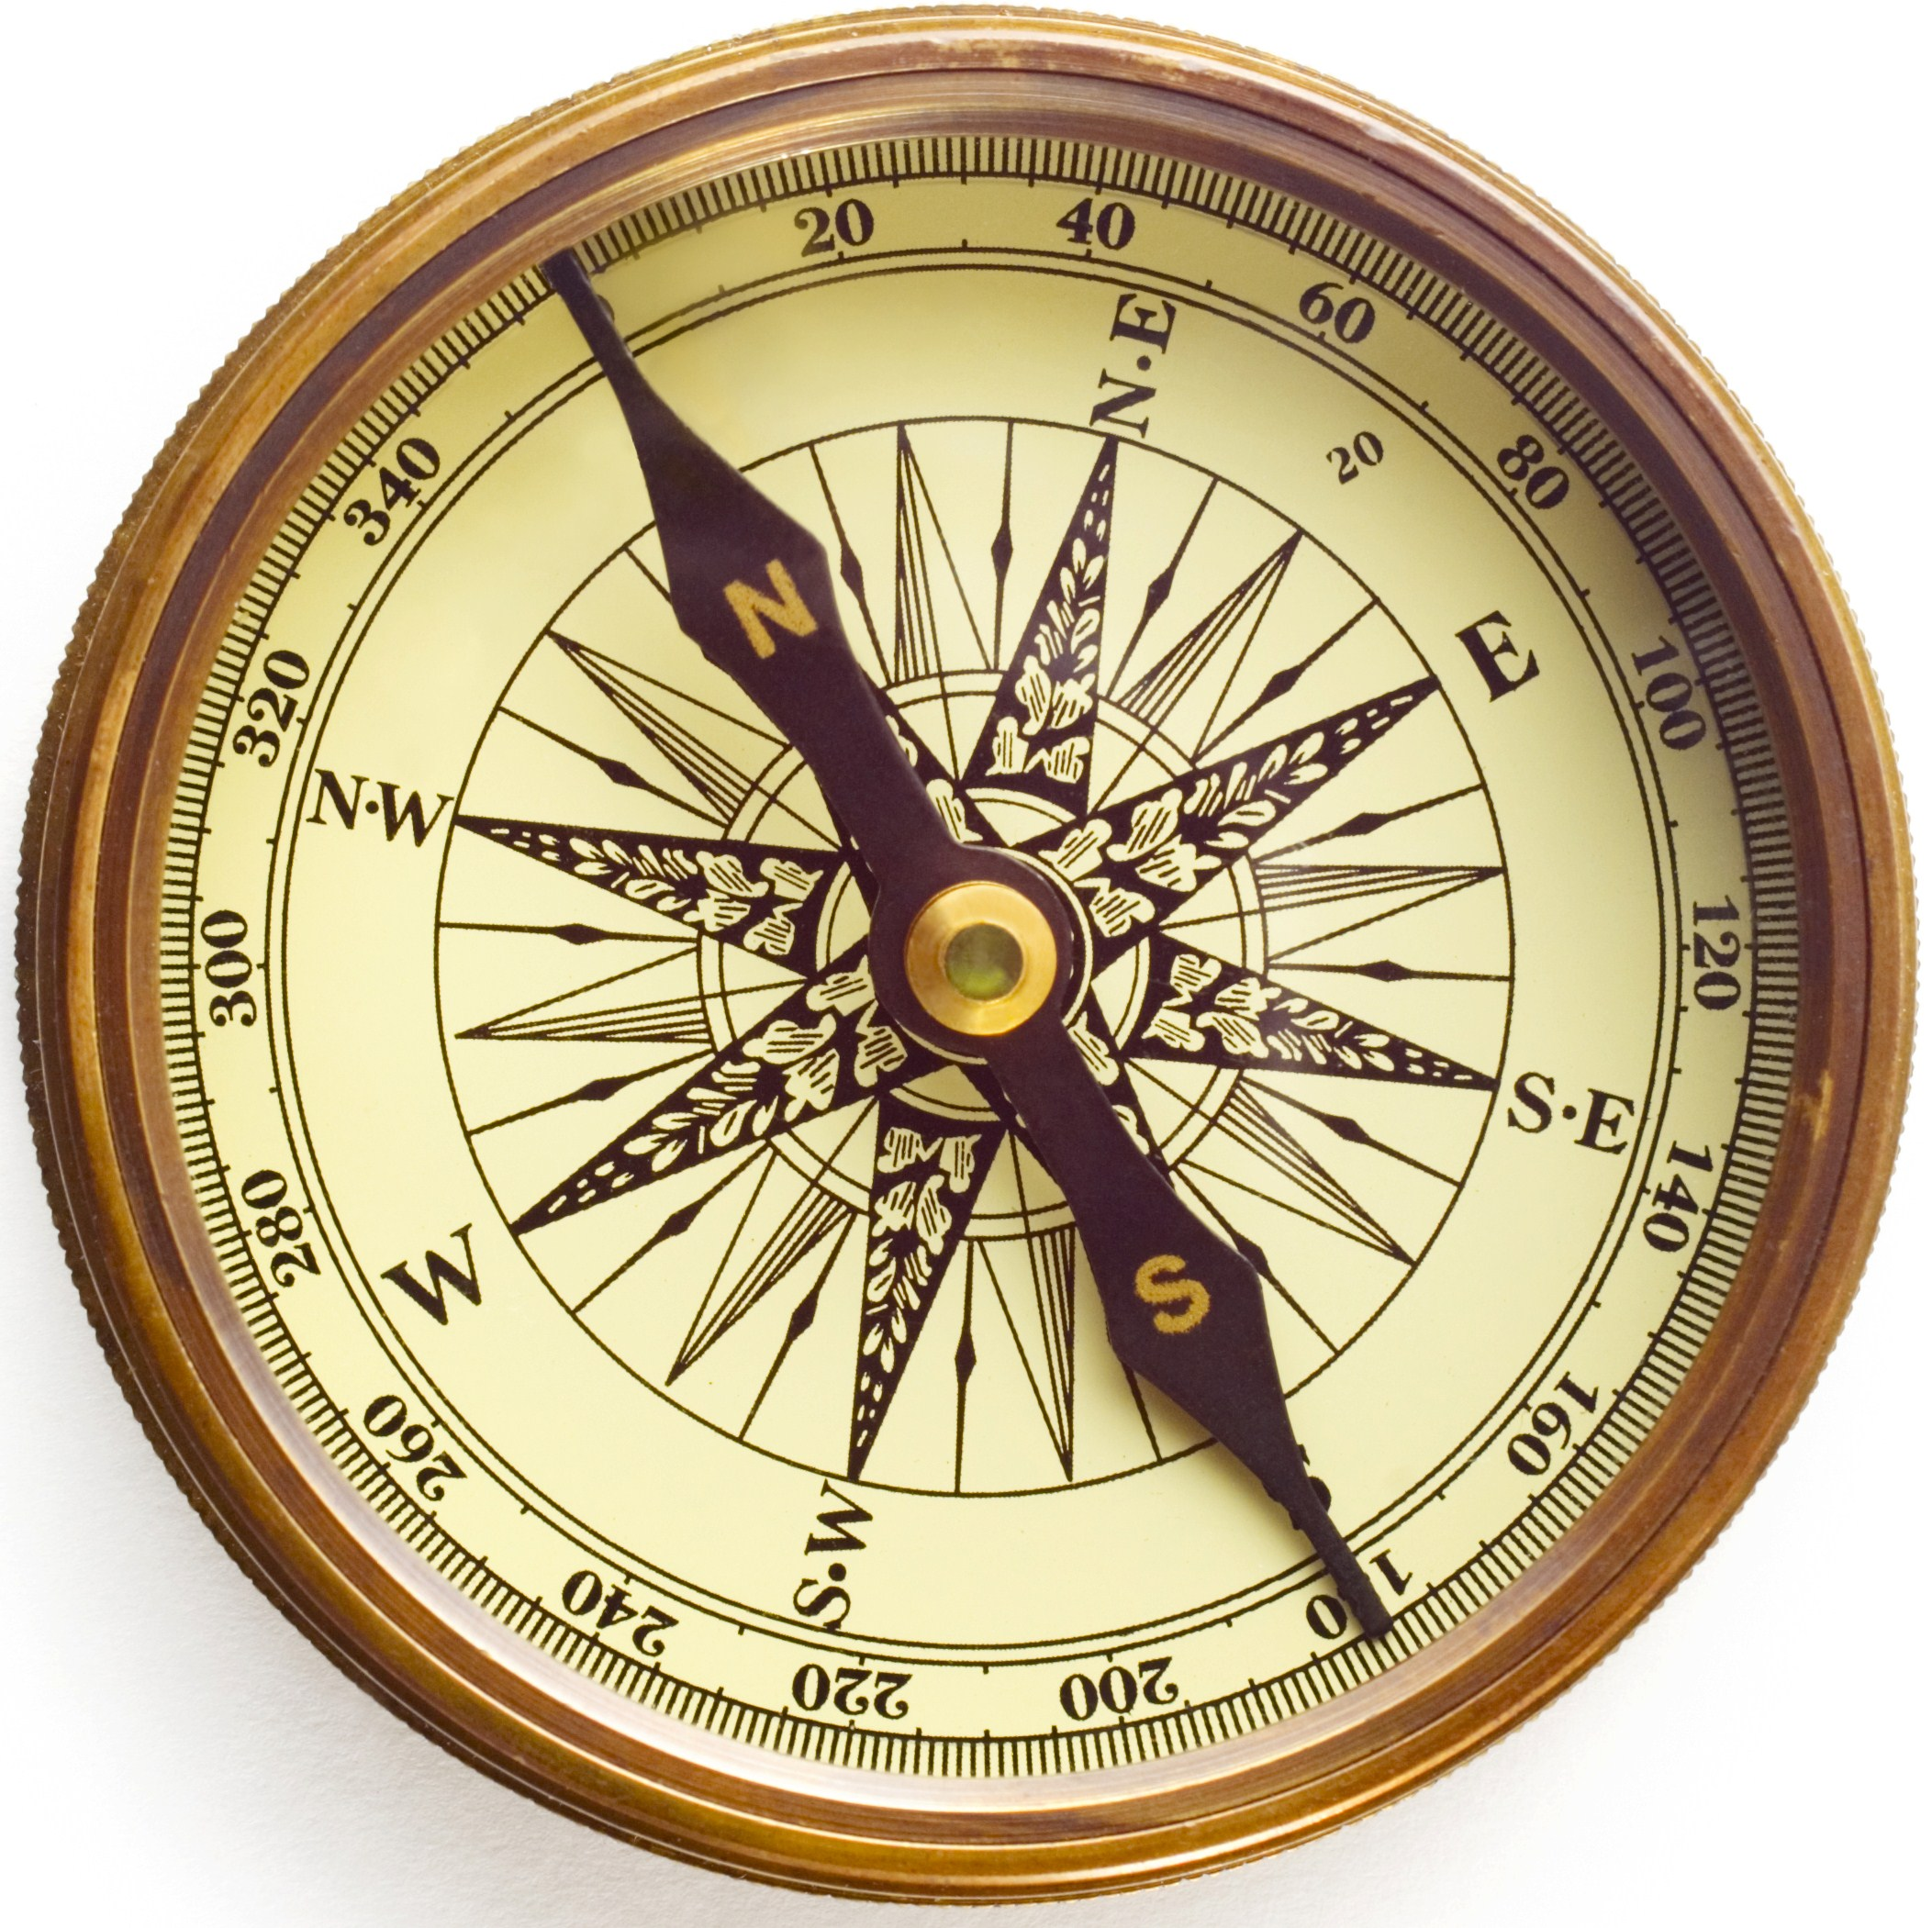 Hard Goods Compass Buying Agency in India